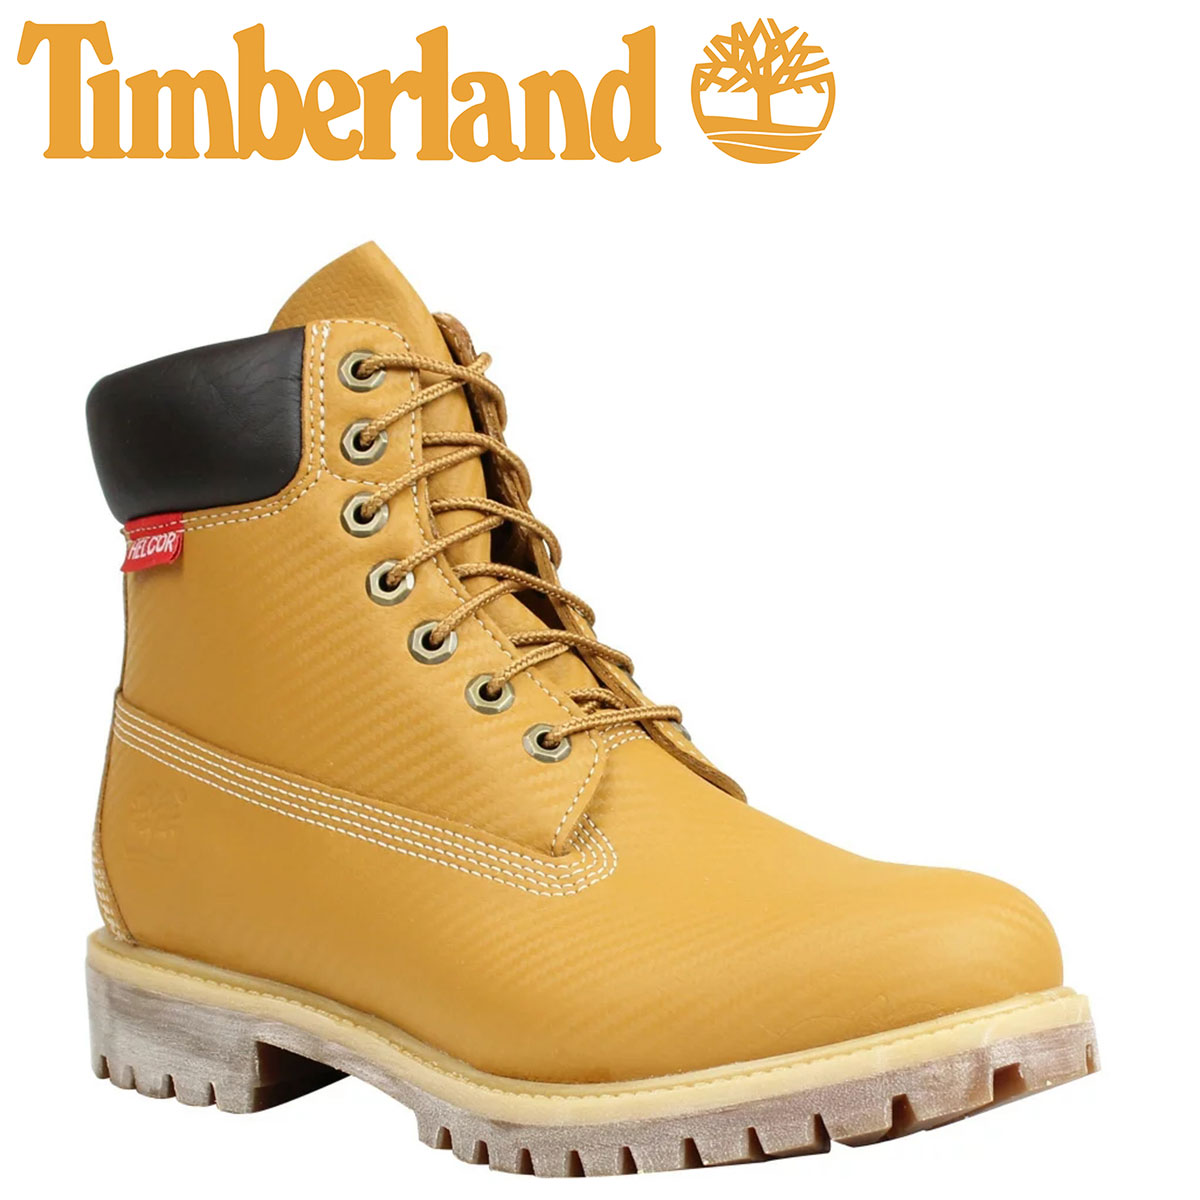 6 inches of Timberland Timberland 6 INCH PRM HELCOR CARBON FIBER BOOT boots premium Hel car carbon fiver 6,607A W ワイズウィートメンズ